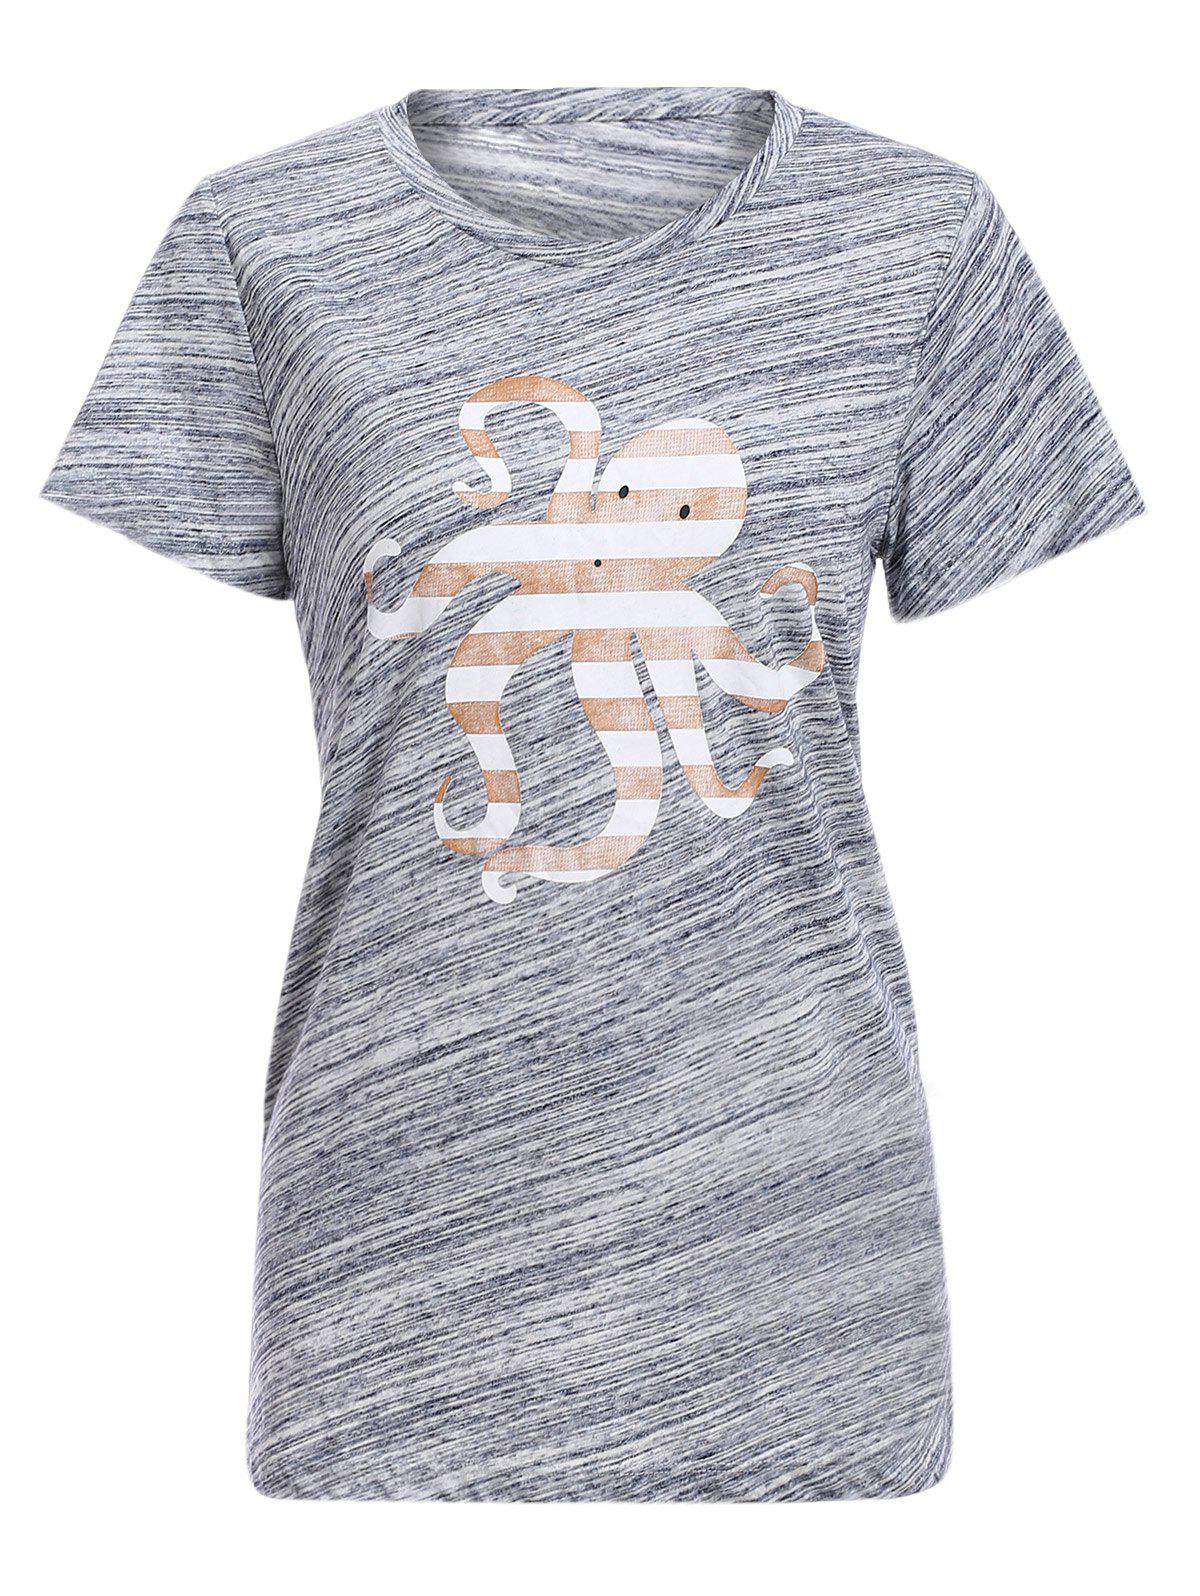 Trendy Short Sleeve Round Collar Octopus Print Womens T-ShirtWomen<br><br><br>Size: M<br>Color: GRAY